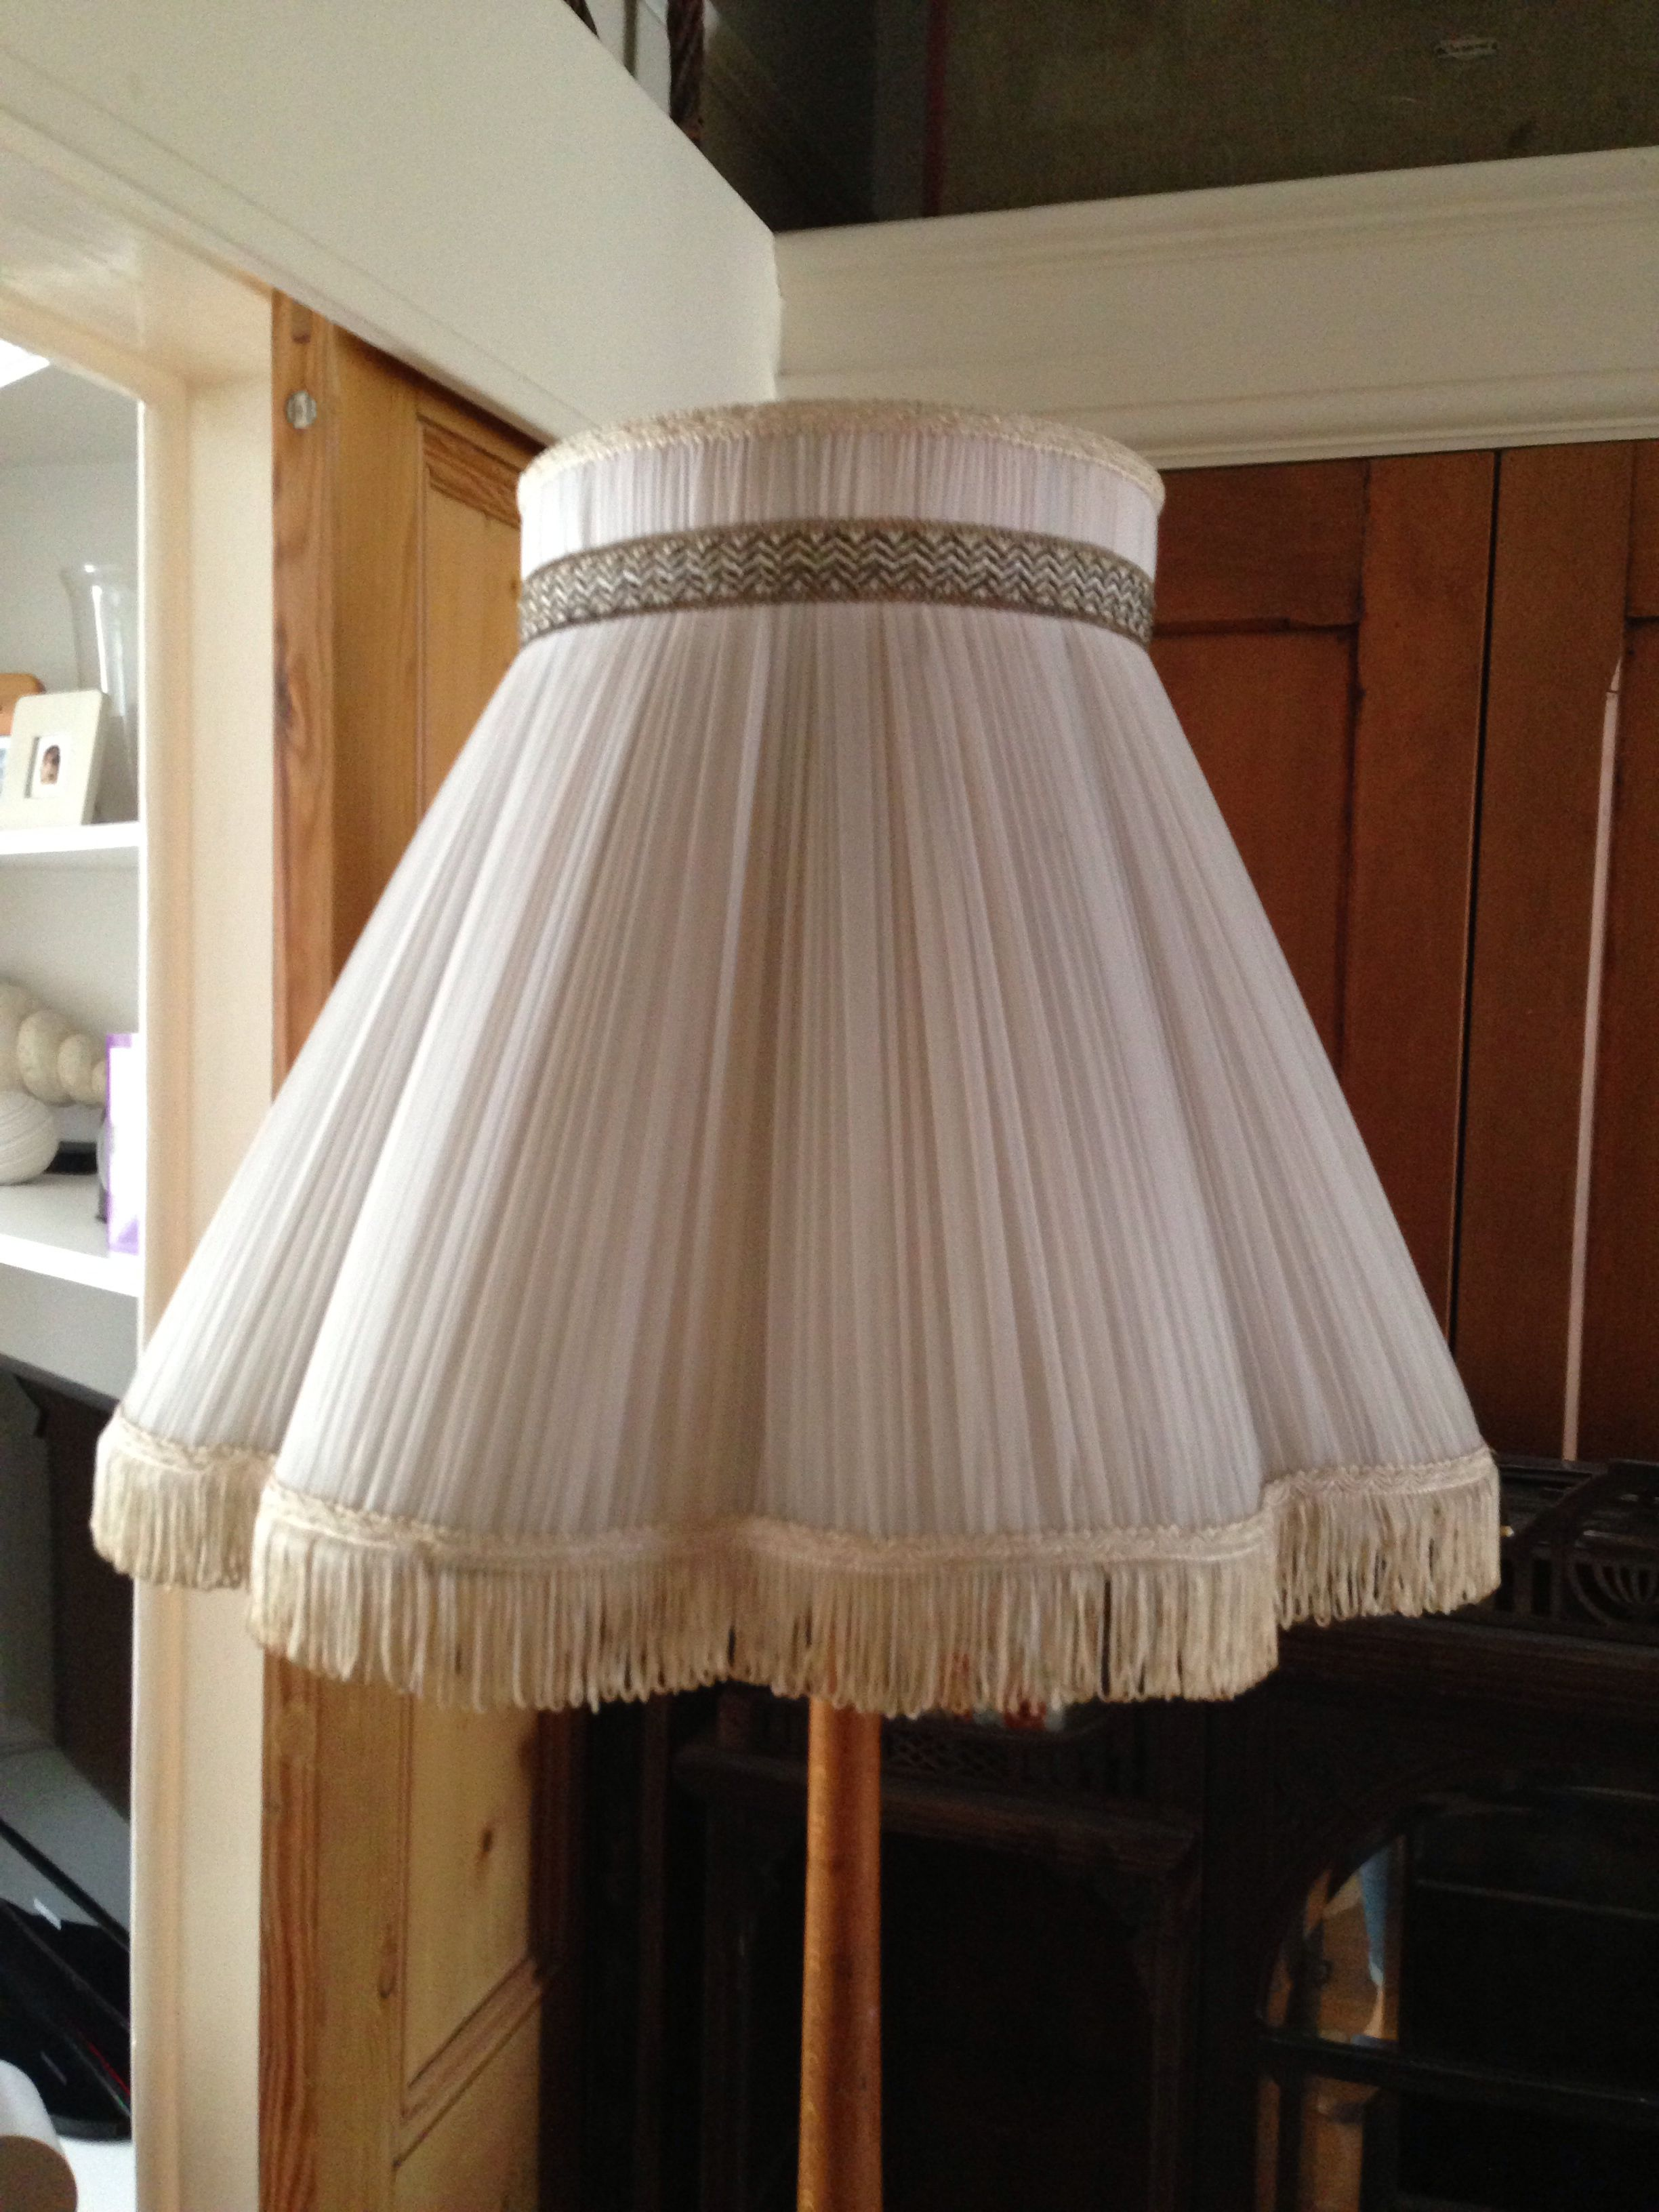 Vintage Pleated 1930s Lampshade Lamp Shade Lampshades Home